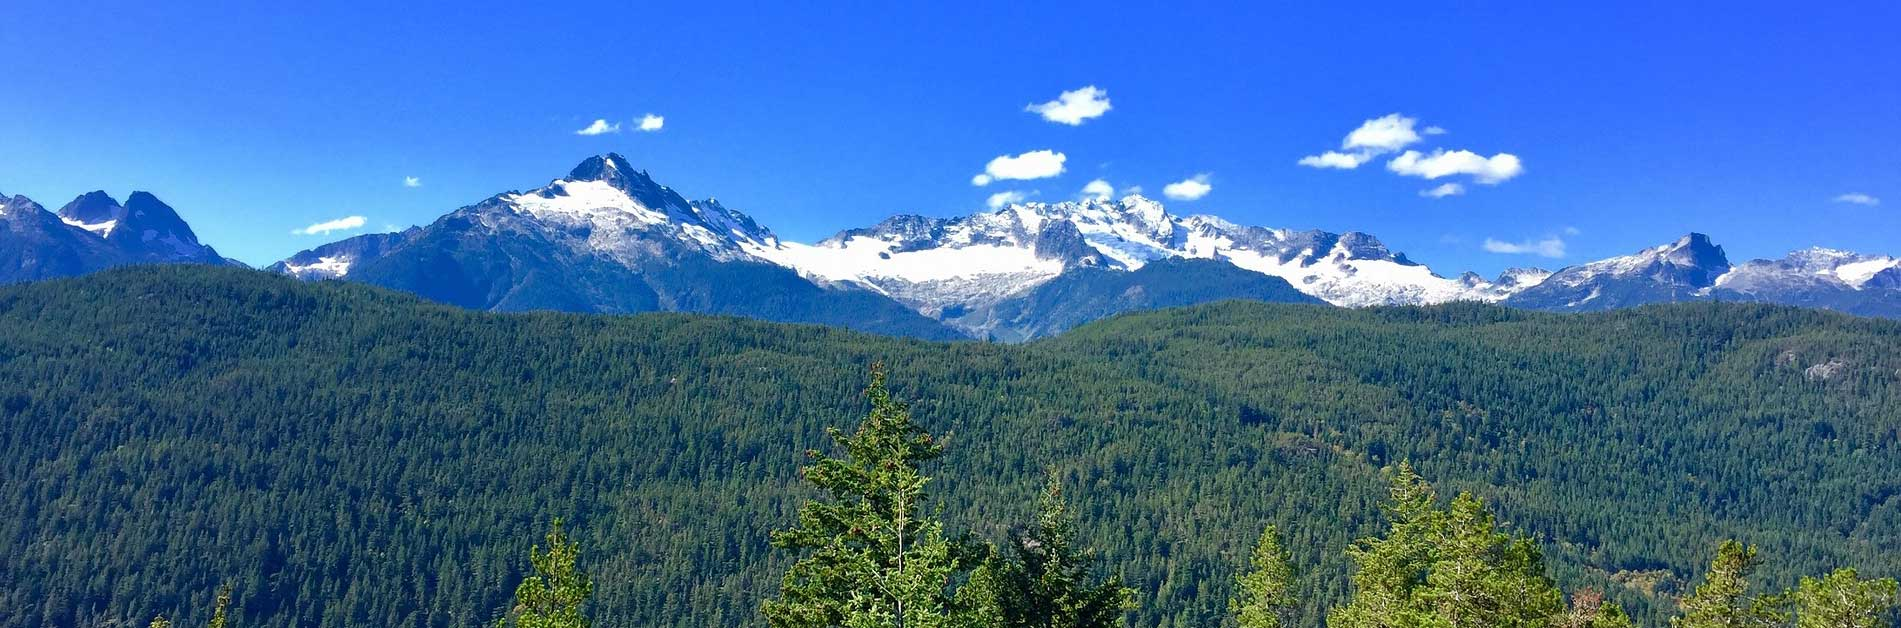 10 Things to Do in Whistler in Summer